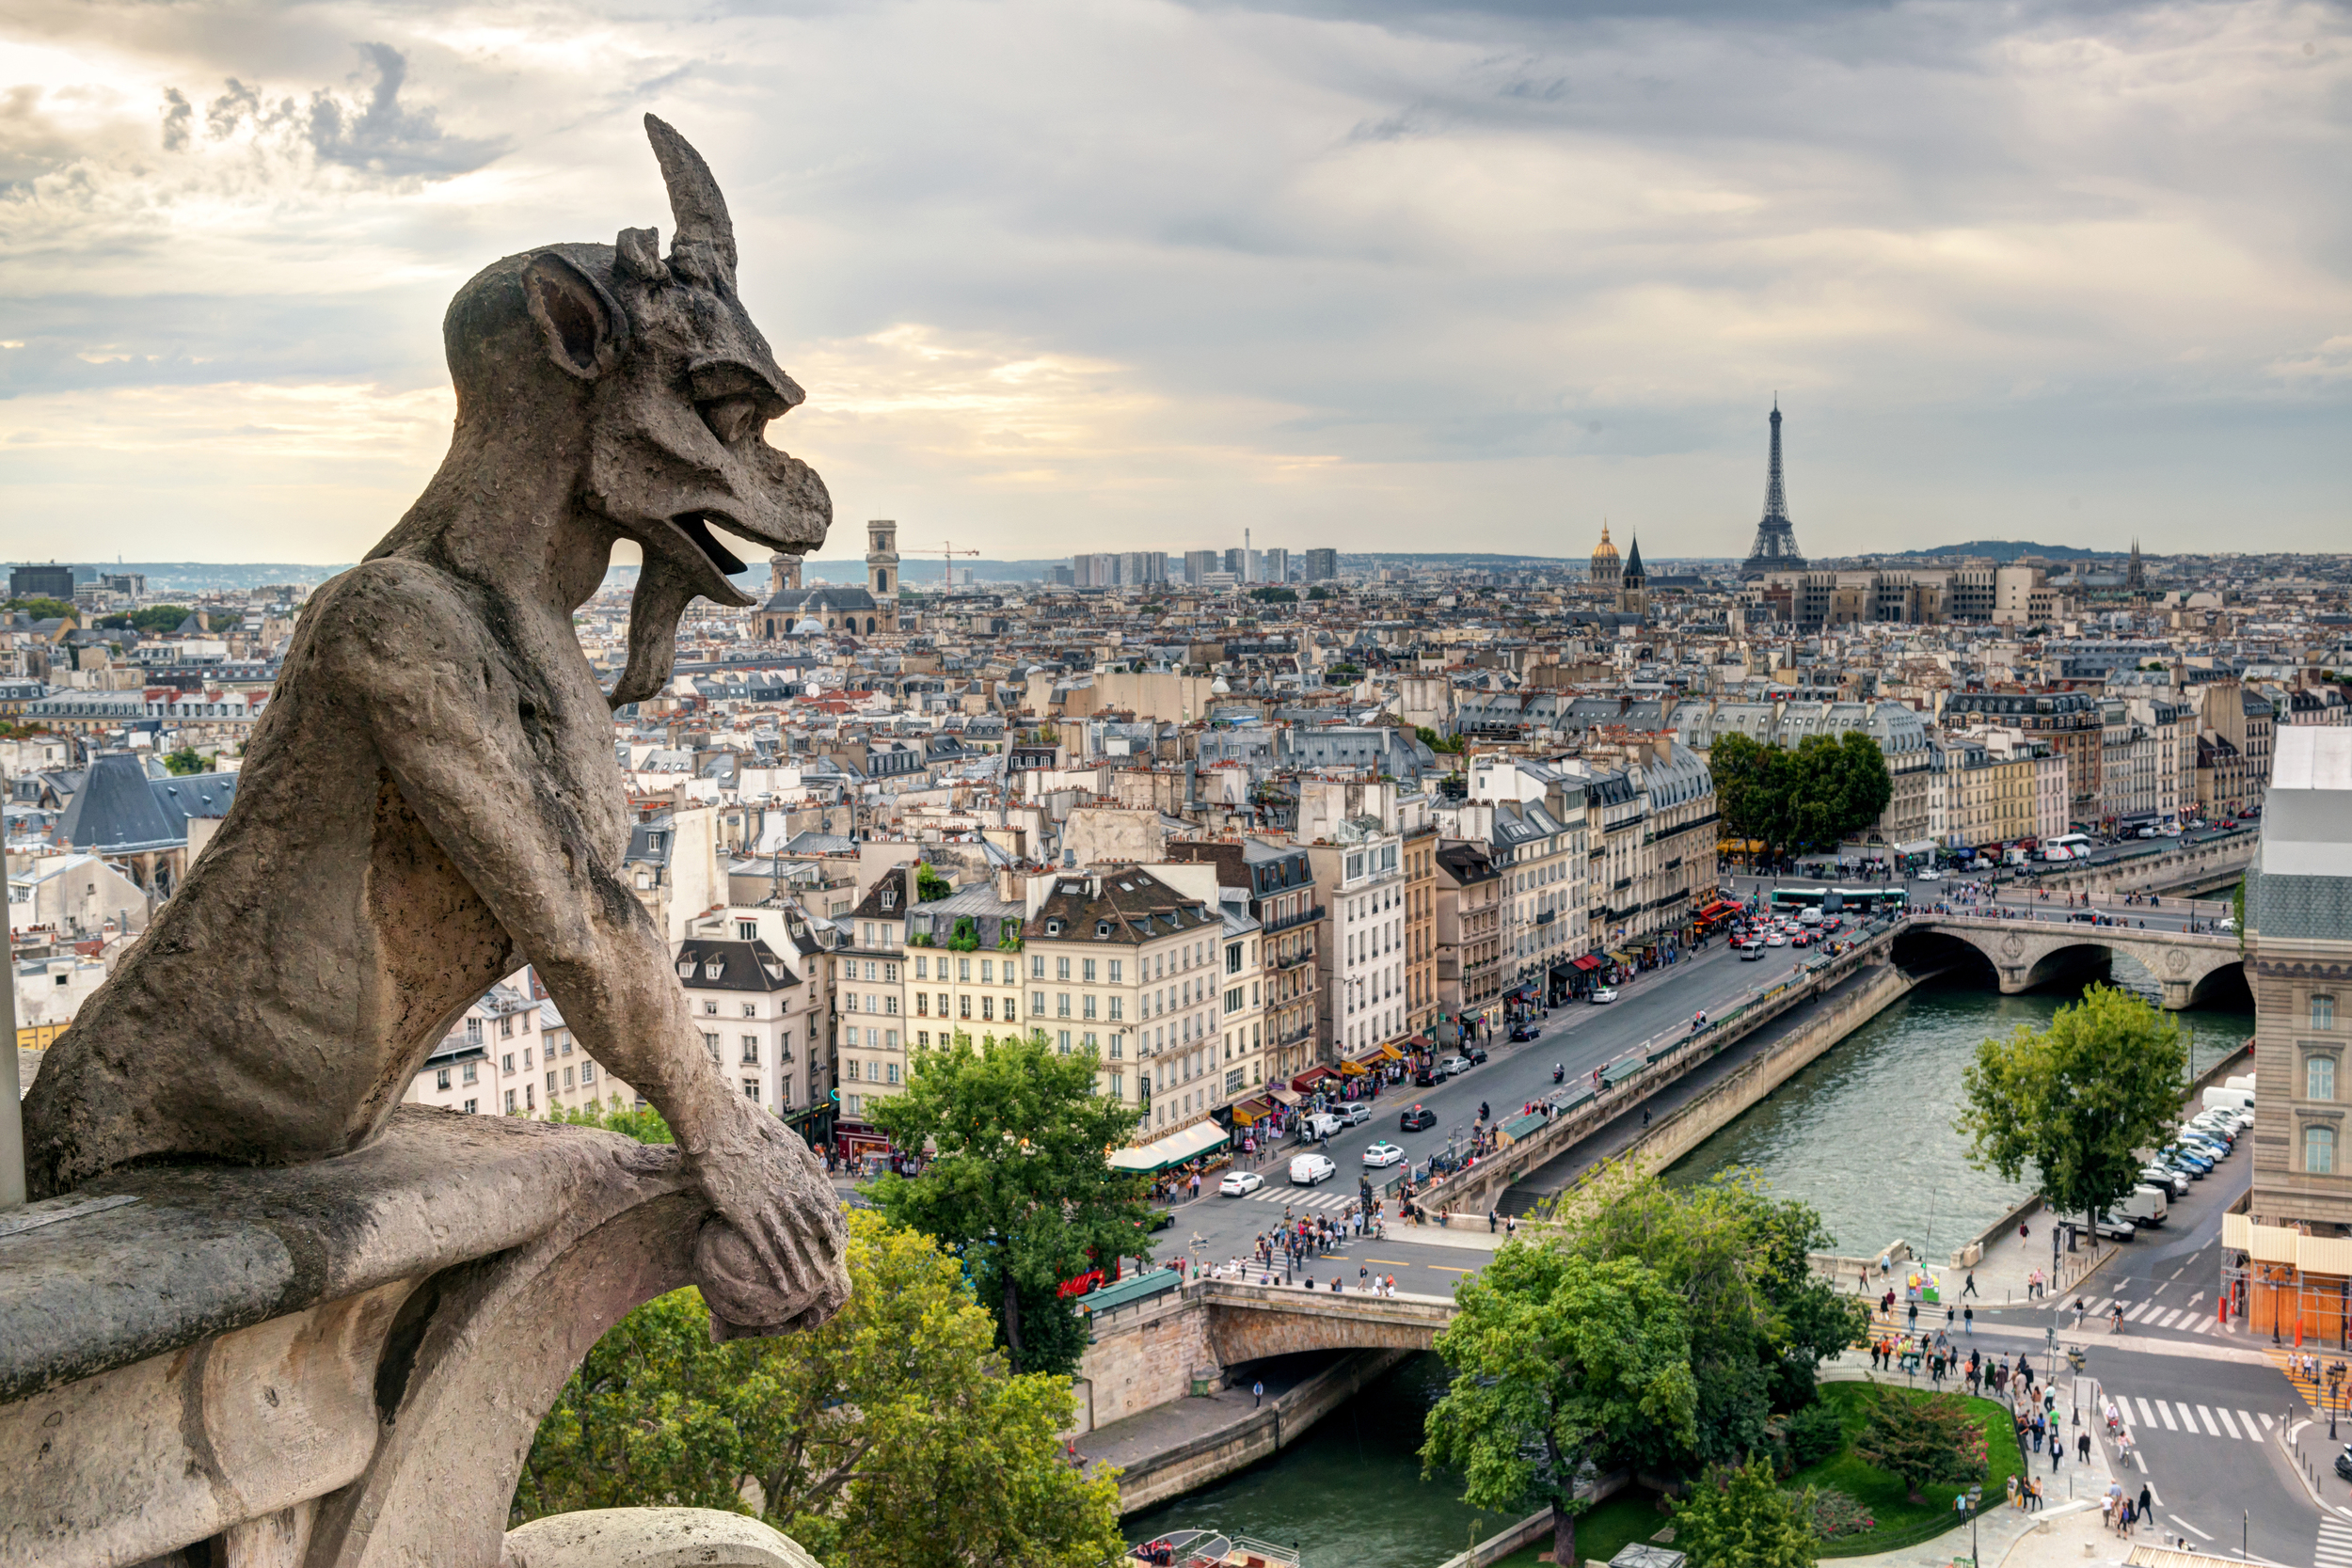 A gargoyle overlooking the River Seine and city